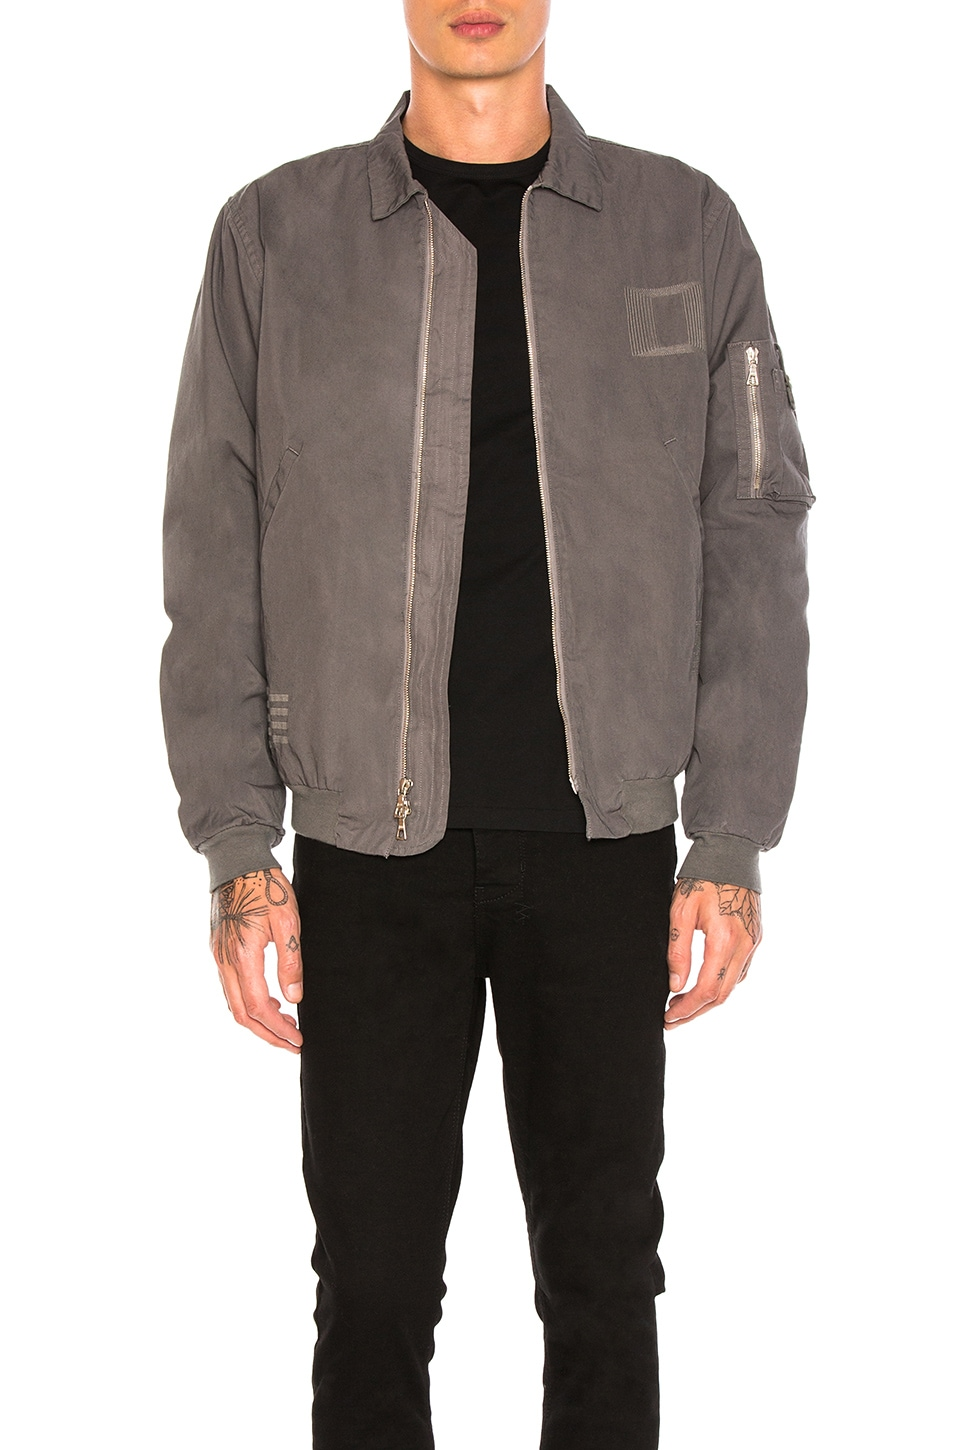 Embroidered Flight Jacket by JOHN ELLIOTT